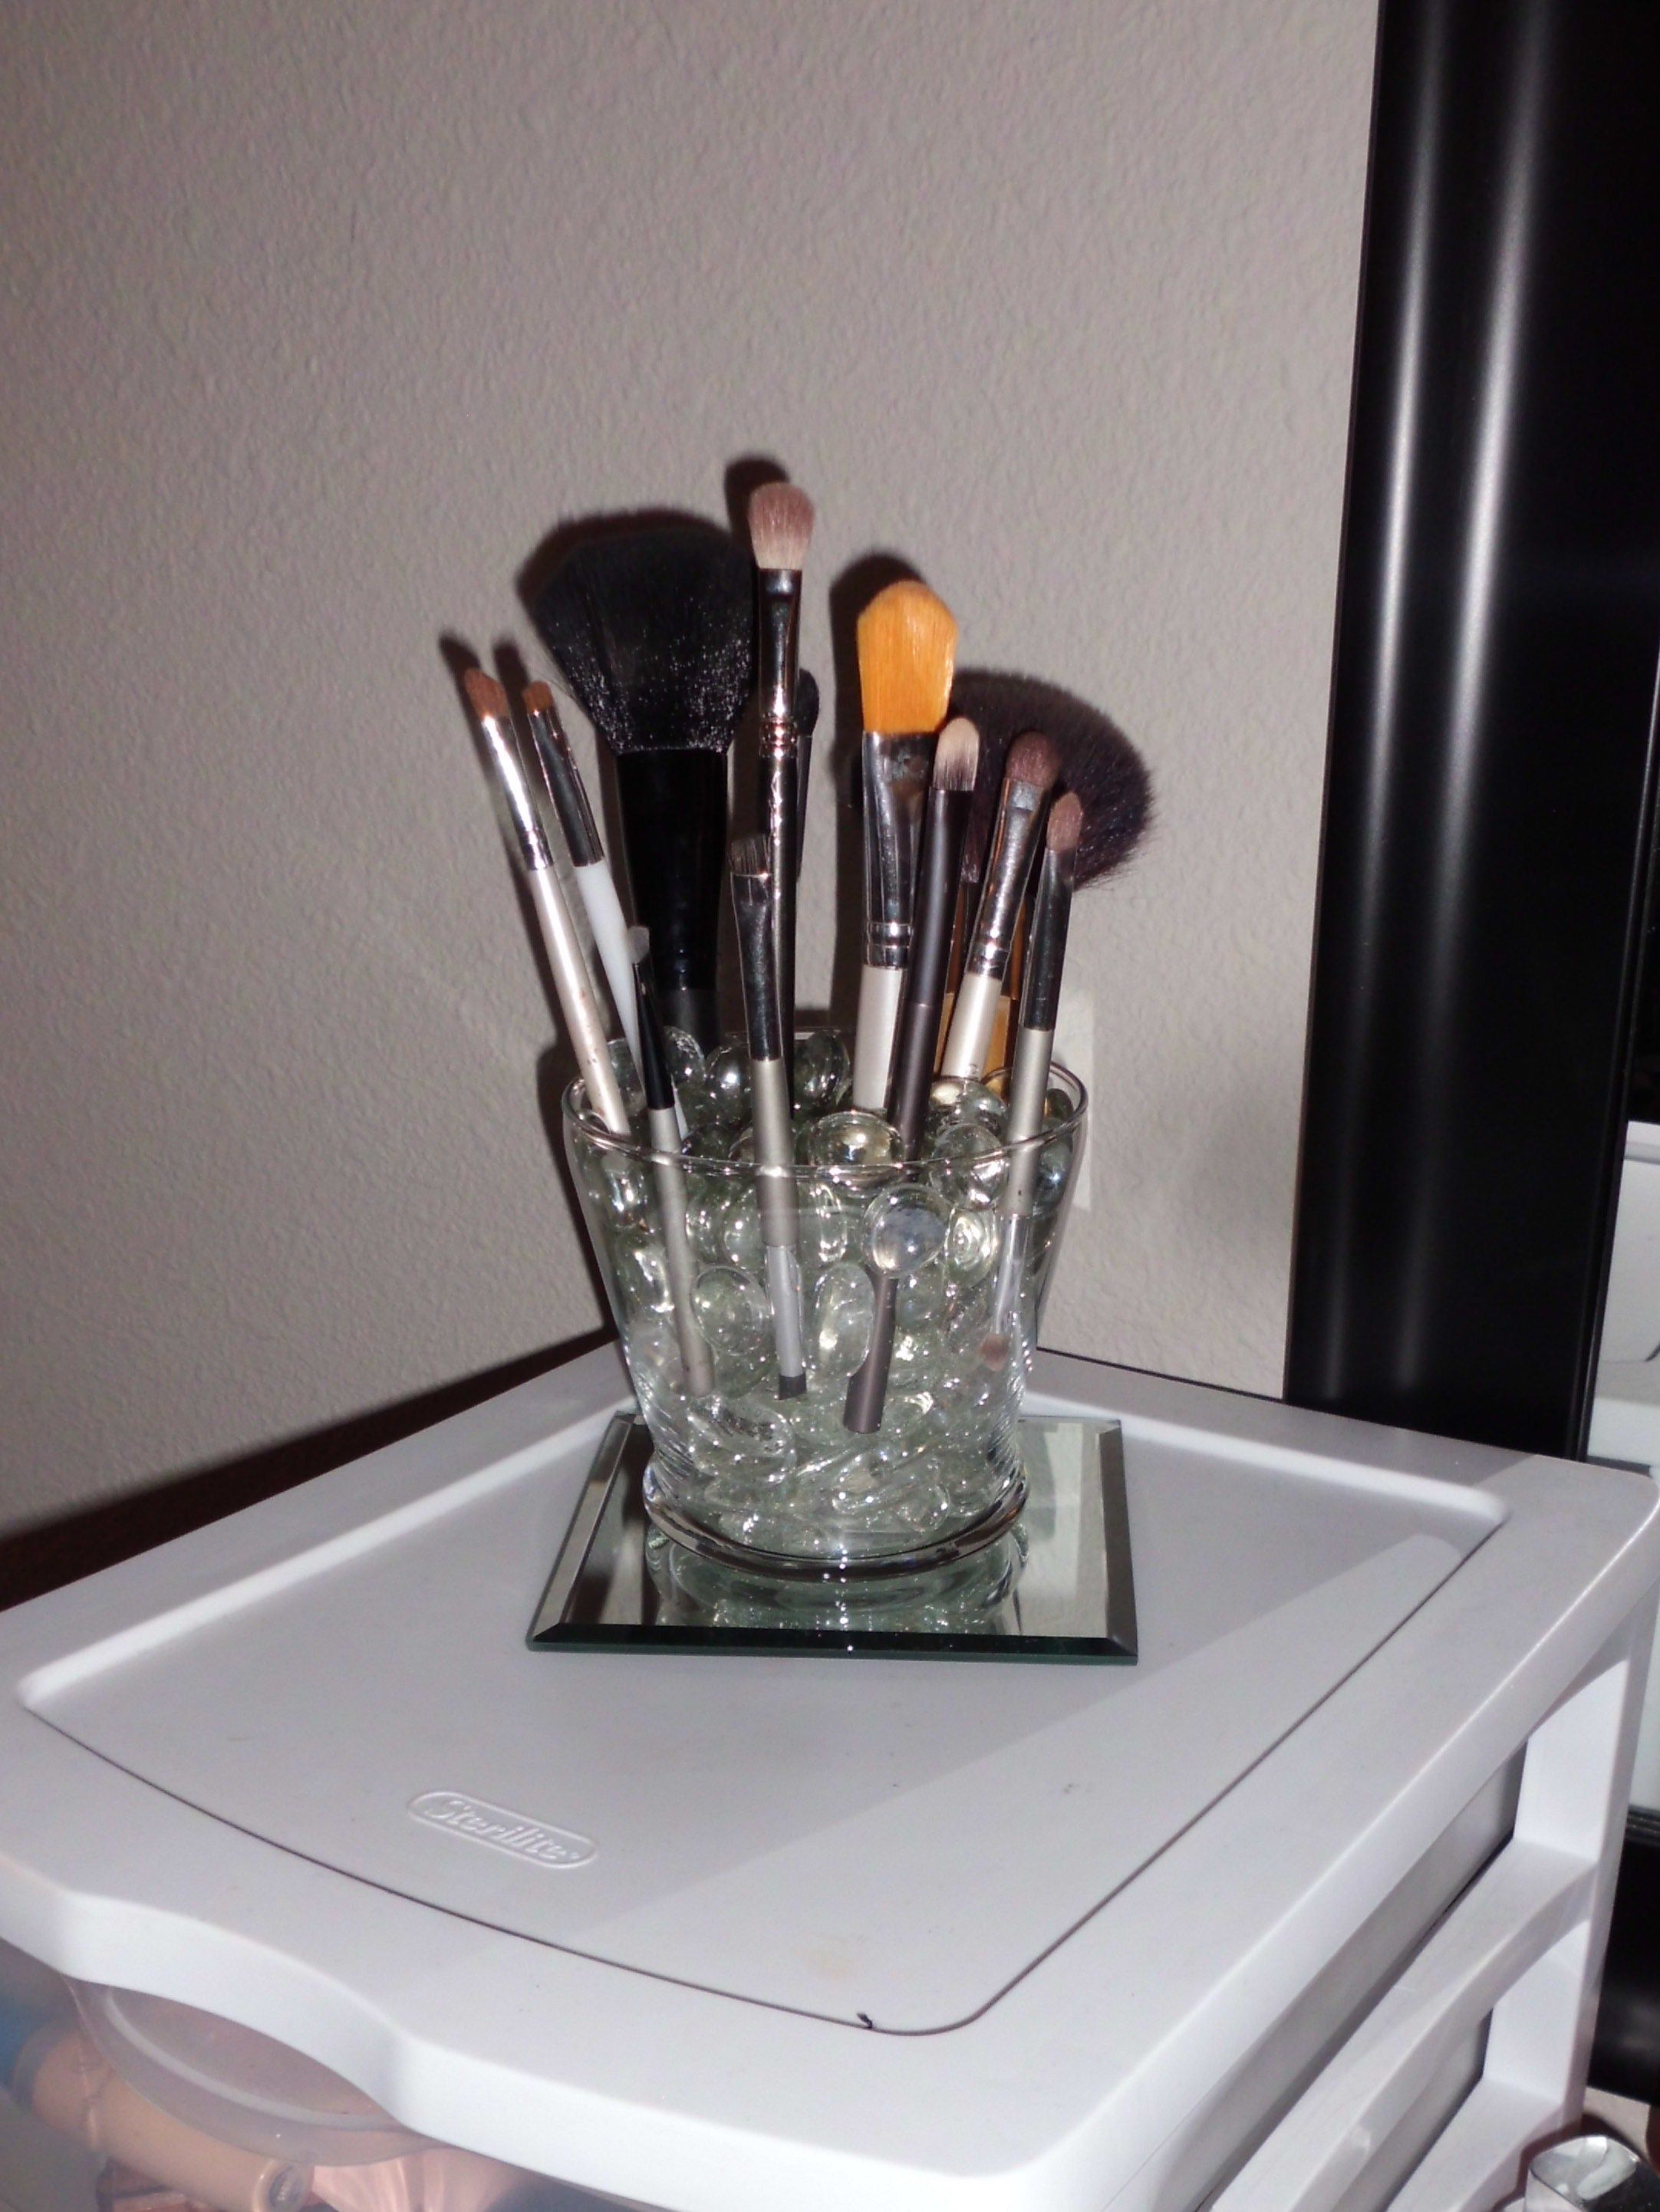 Makeup brush holder with glass marble pieces. So easy and